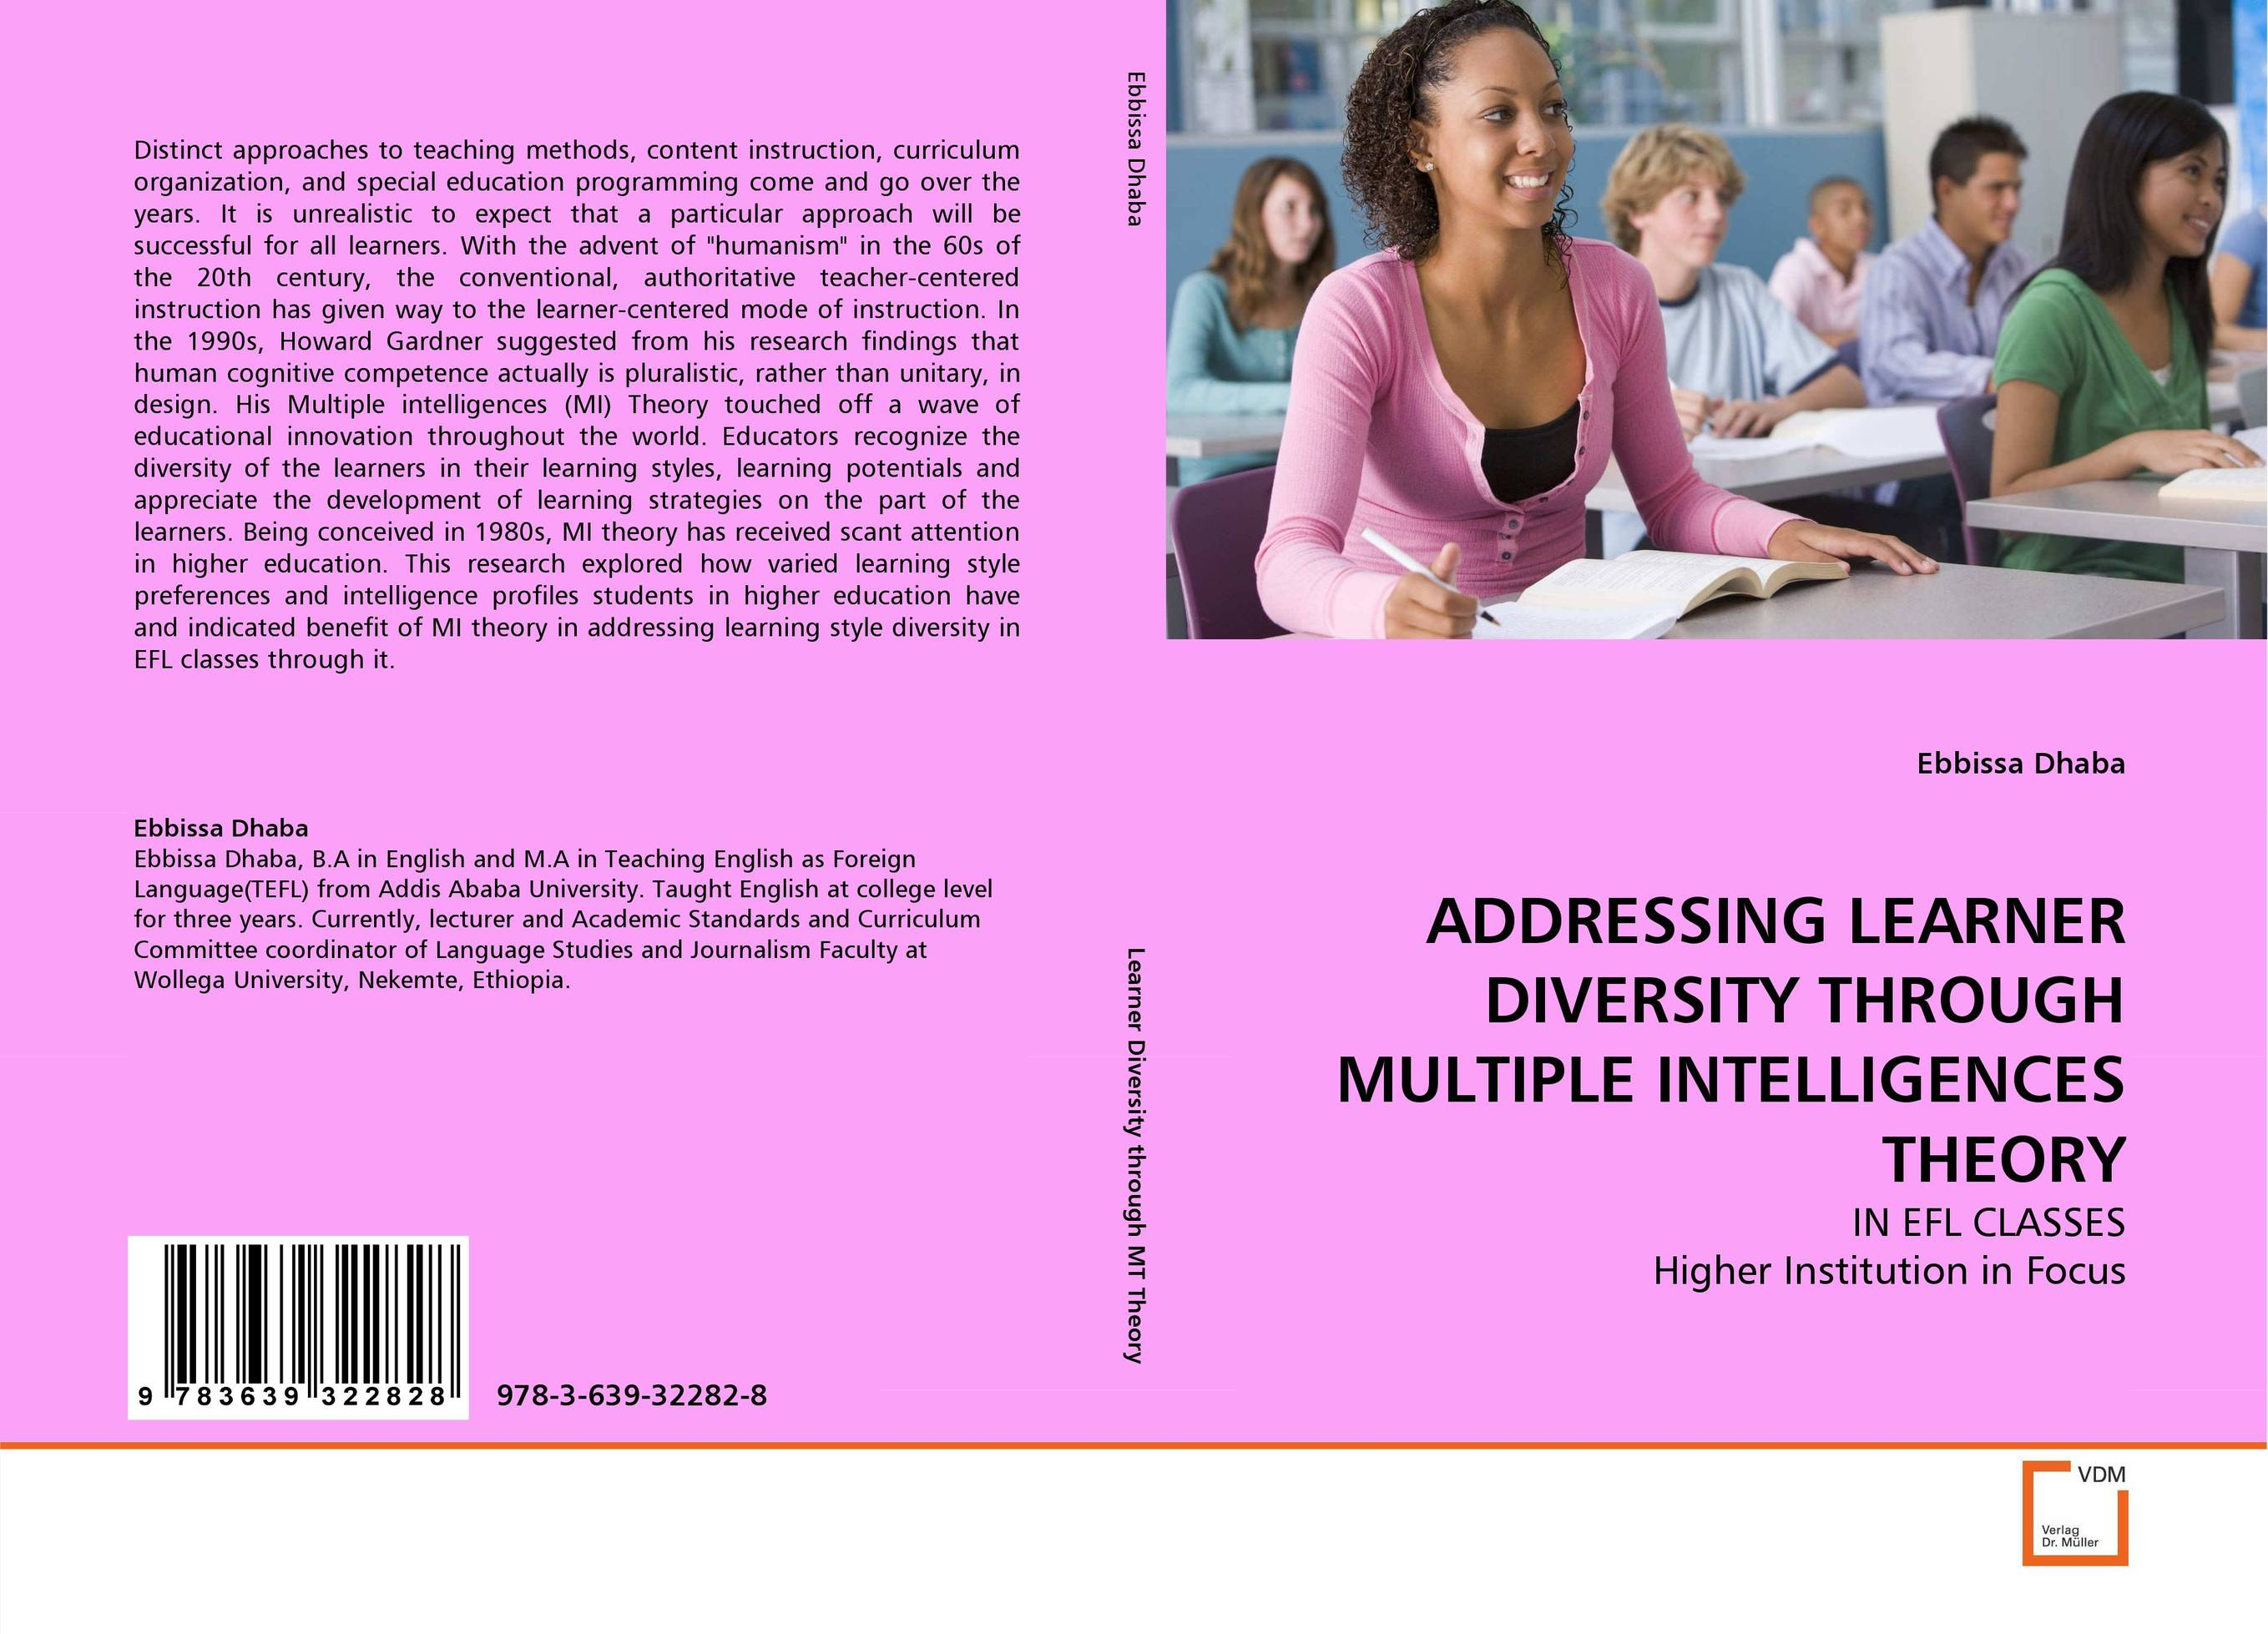 ADDRESSING LEARNER DIVERSITY THROUGH MULTIPLE INTELLIGENCES THEORY